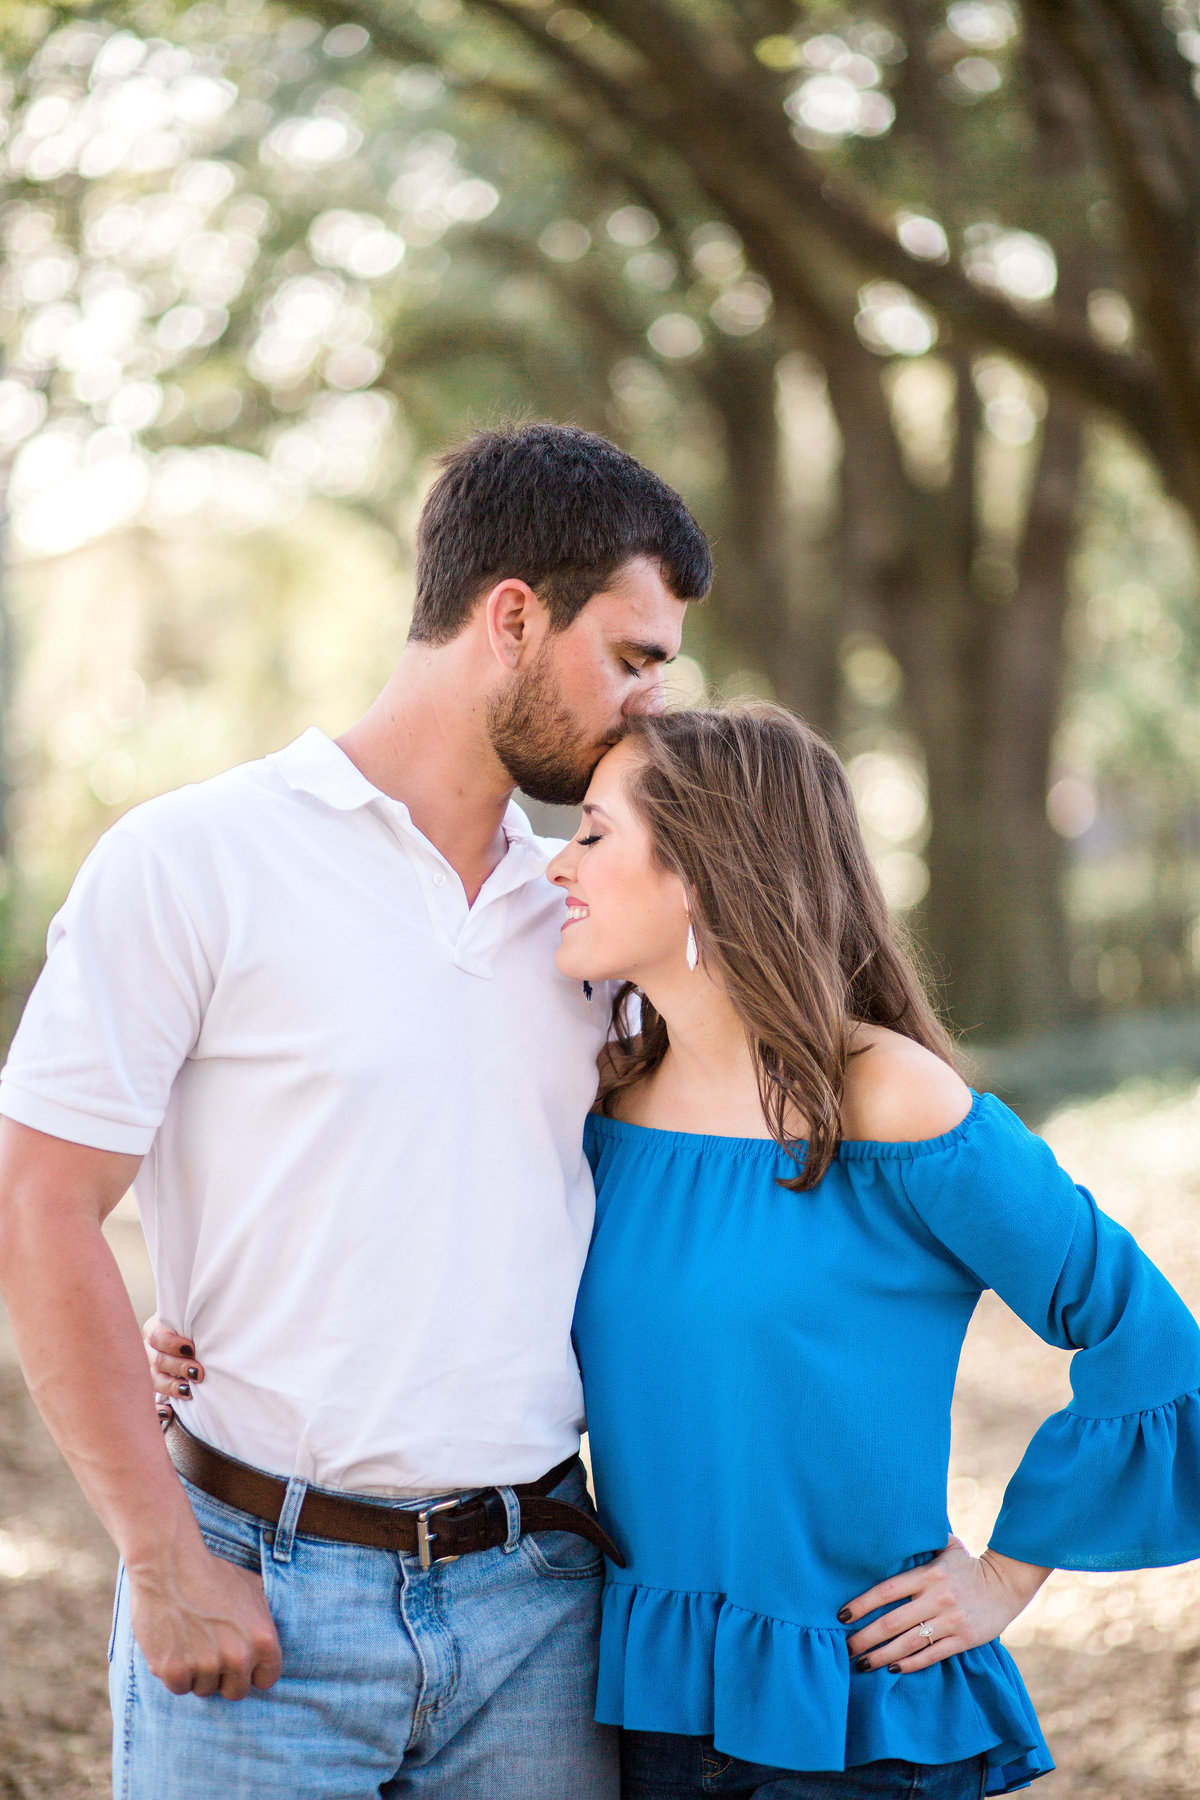 rural_life_museum_baton_rouge_engagement_session_08